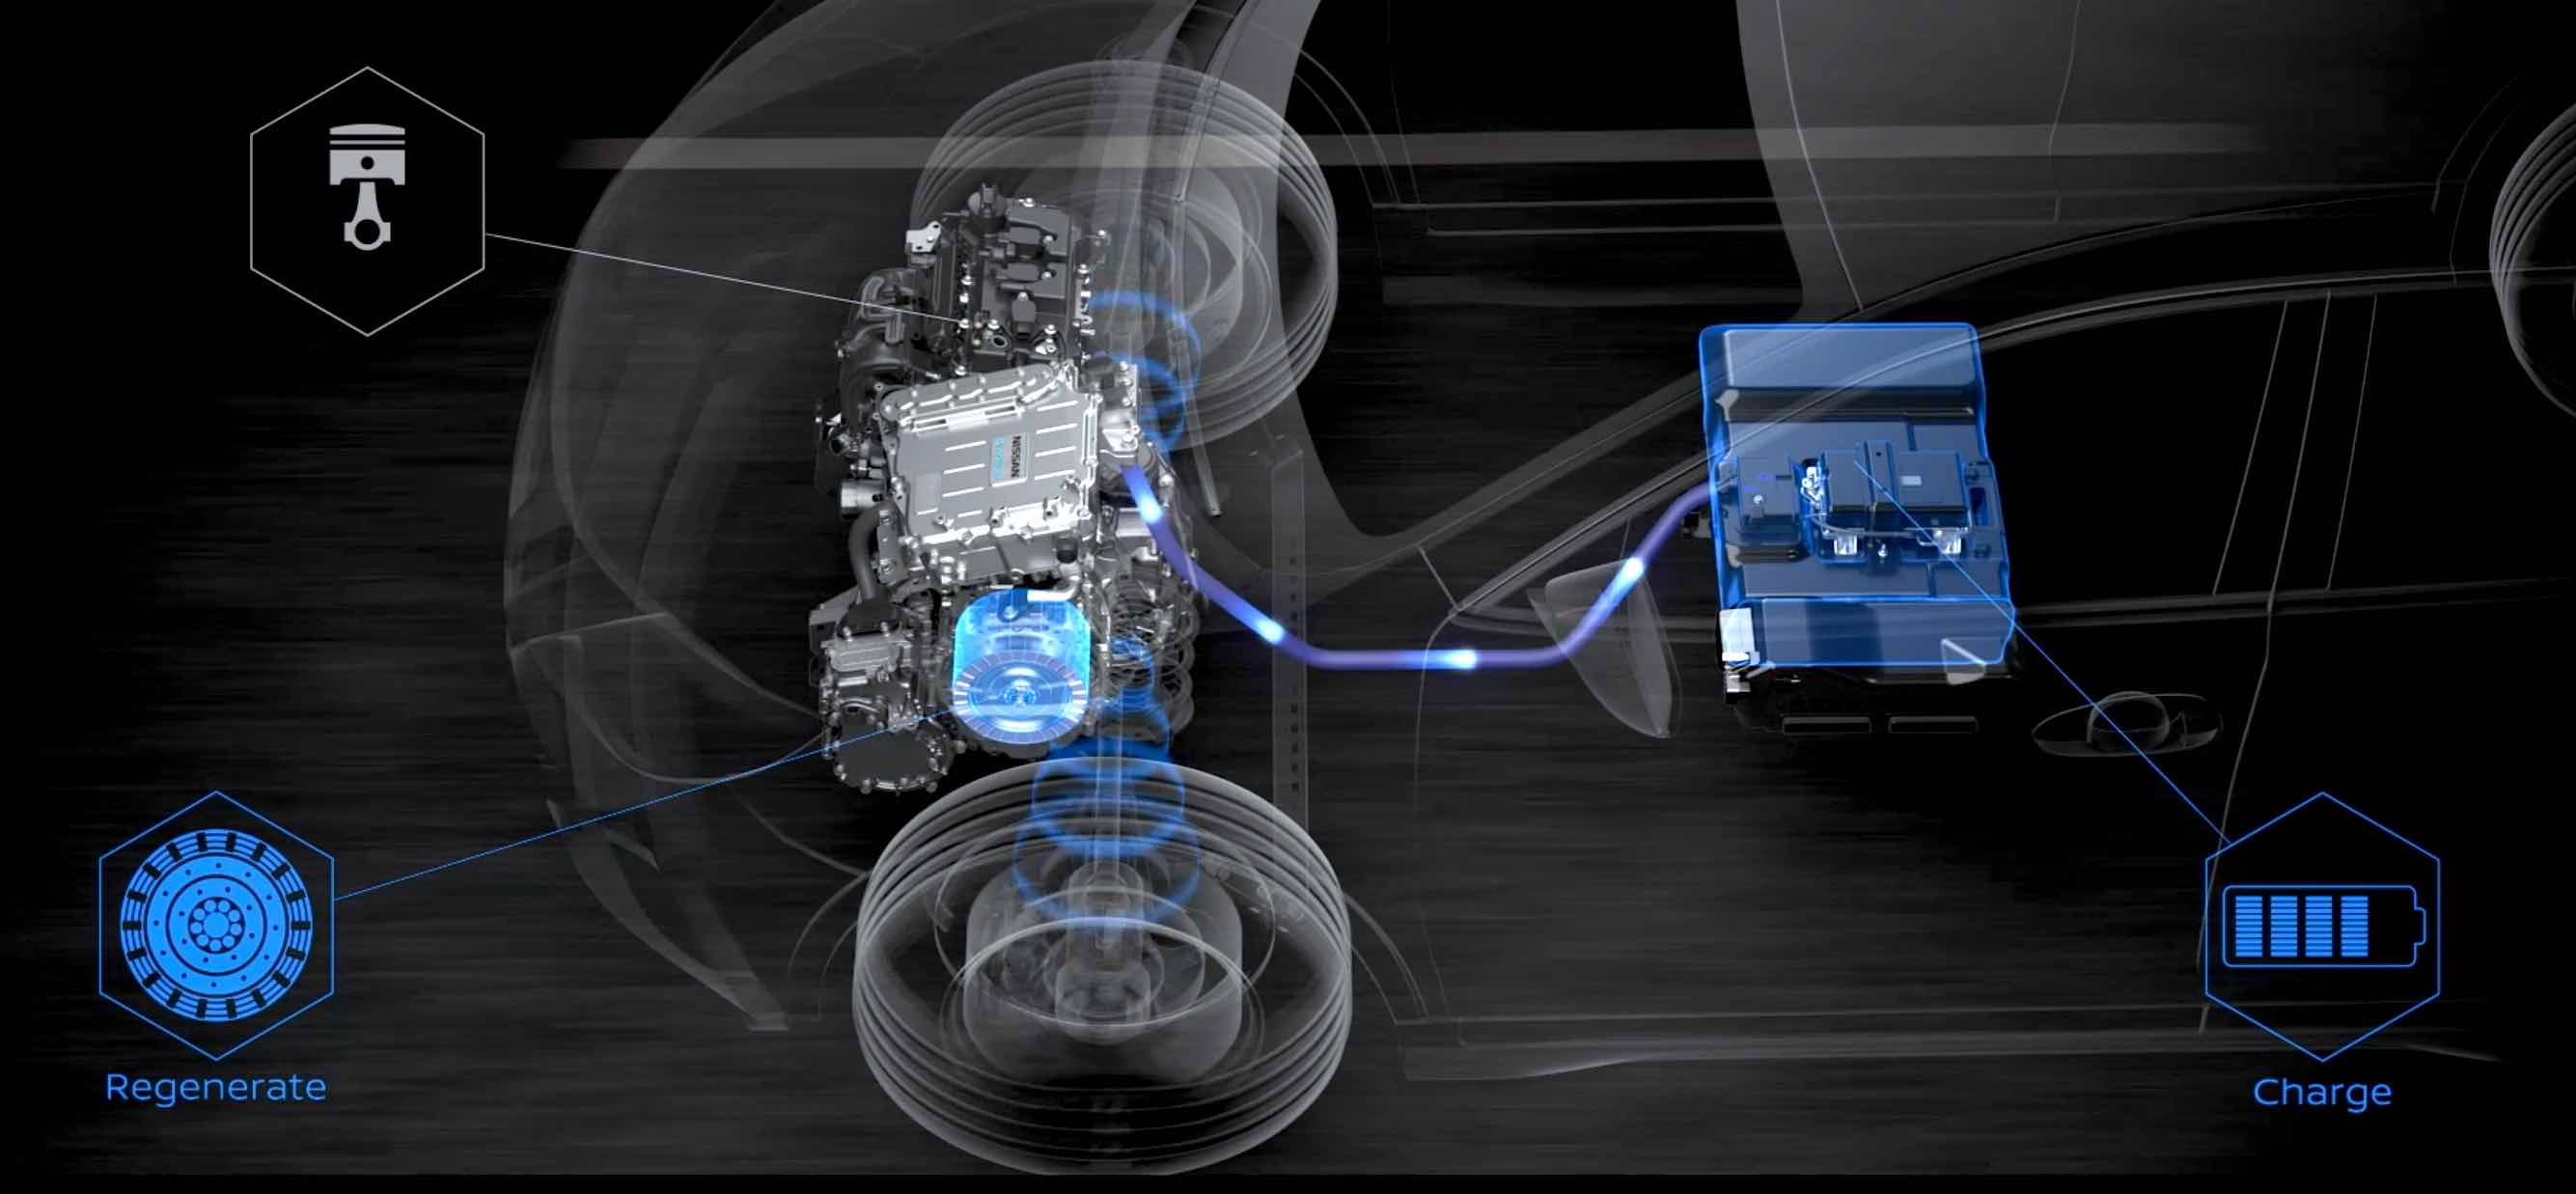 Nissan e-POWER - charge image 01-source (1).jpg